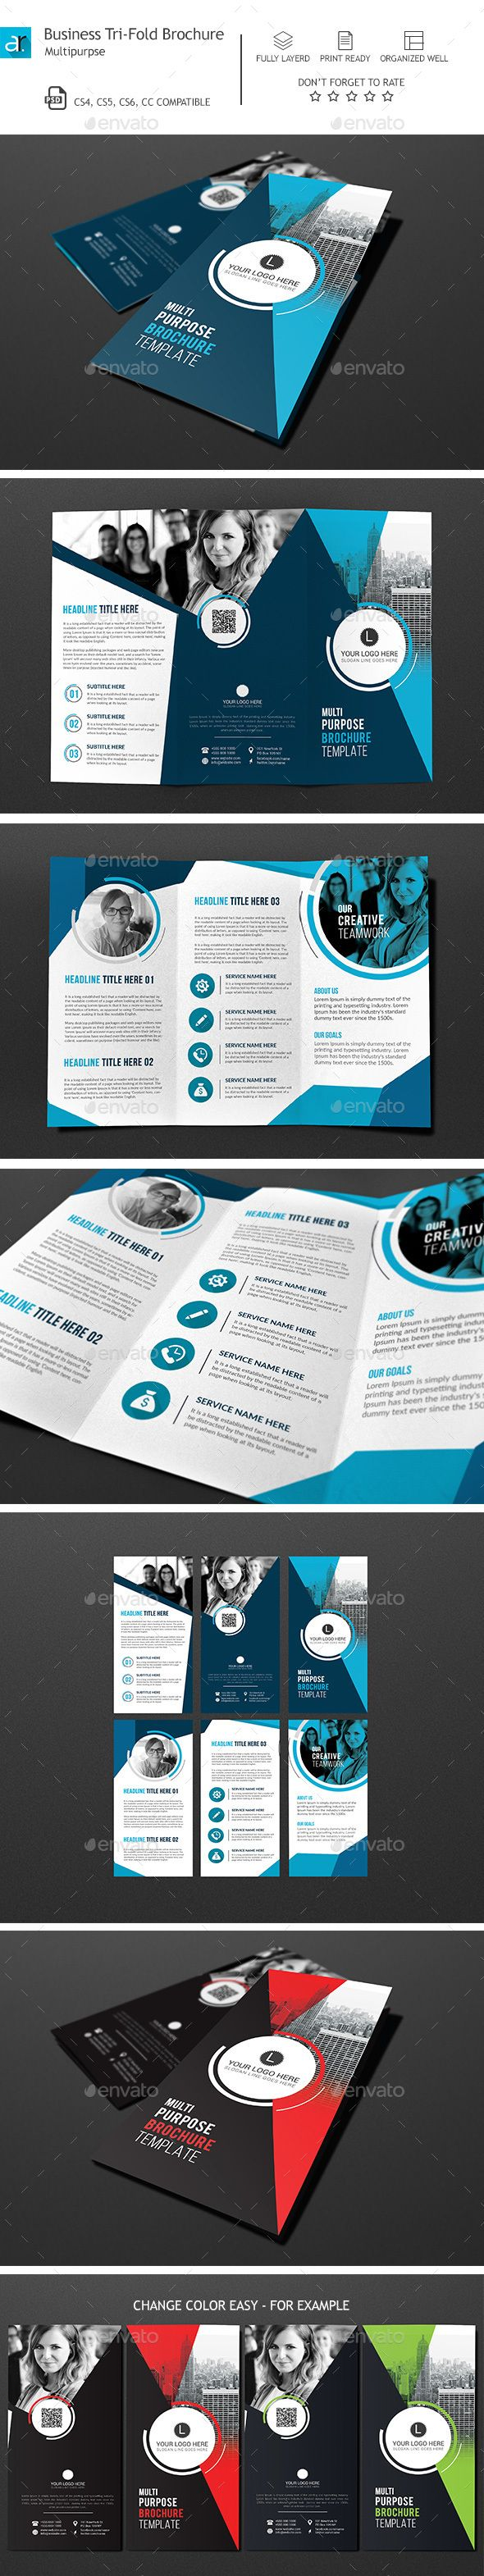 Corporate Tri-Fold Brochure Template PSD. Download here: http://graphicriver.net/item/corporate-trifold-brochure-03-/14770908?ref=ksioks